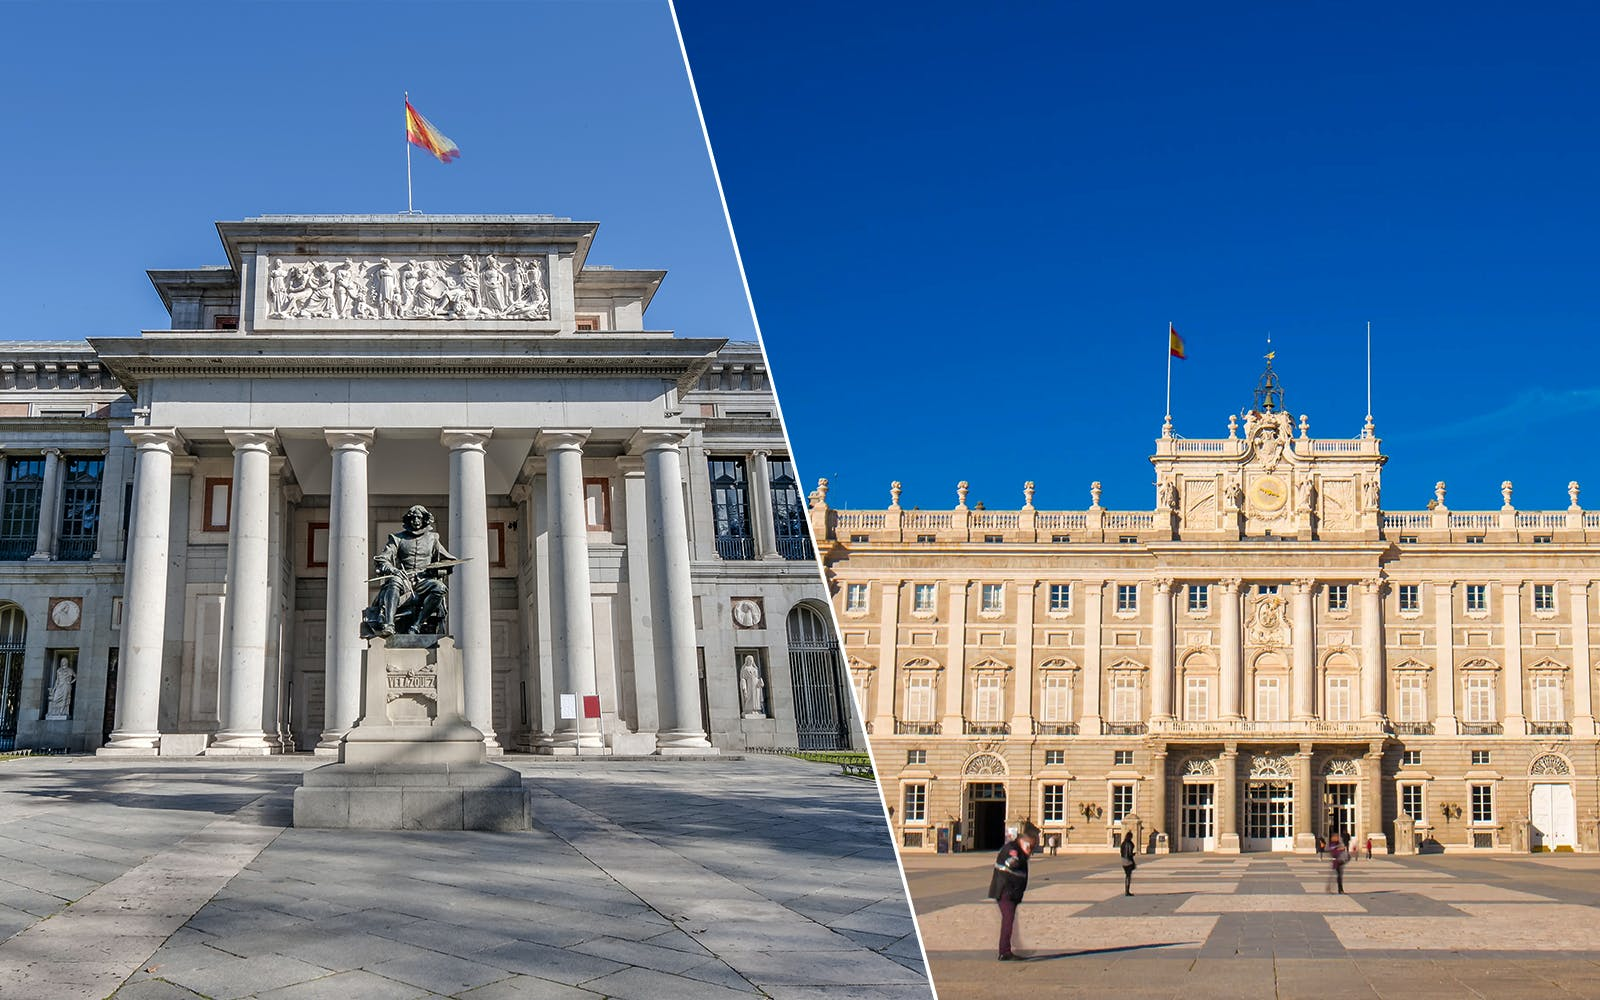 skip the line guided tour tickets to the royal palace of madrid and prado museum-1